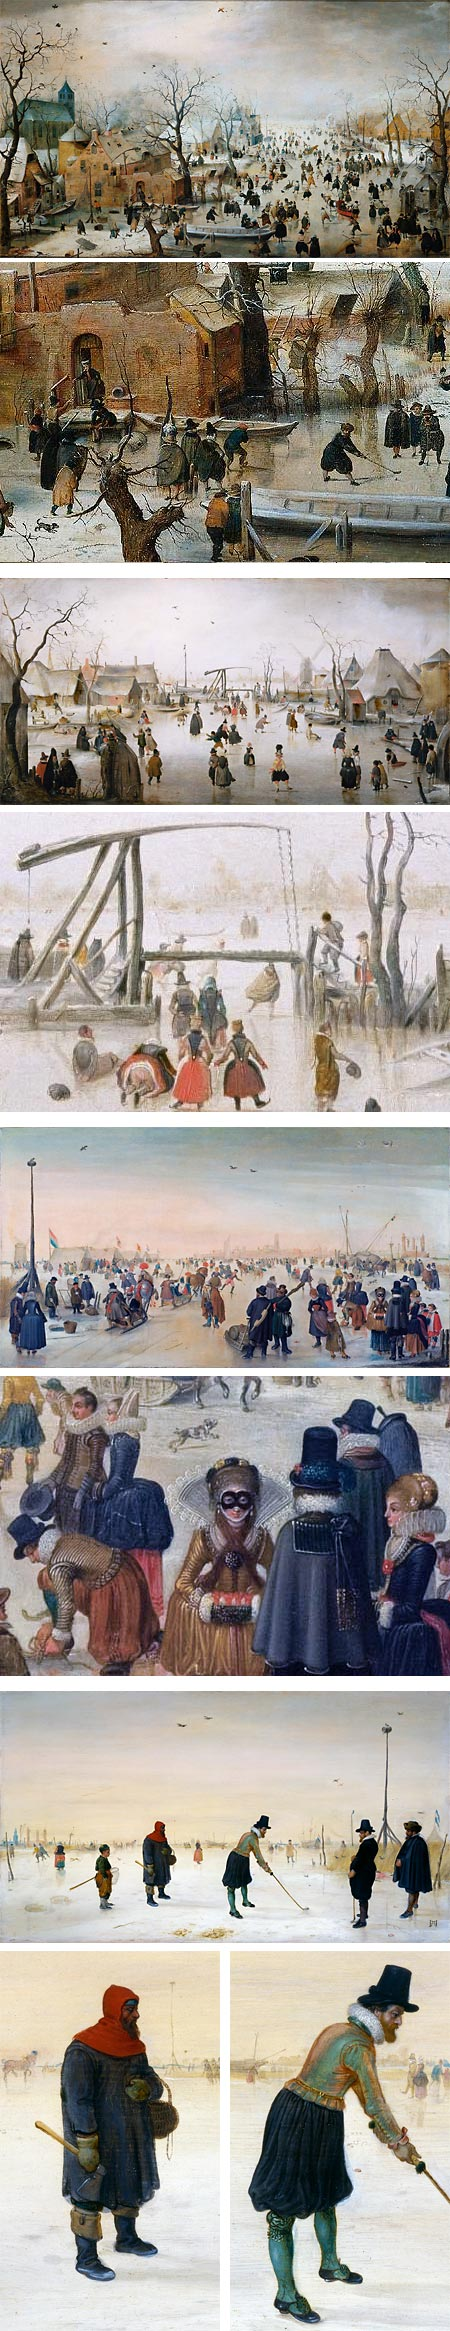 Hendrick Avercamp and the